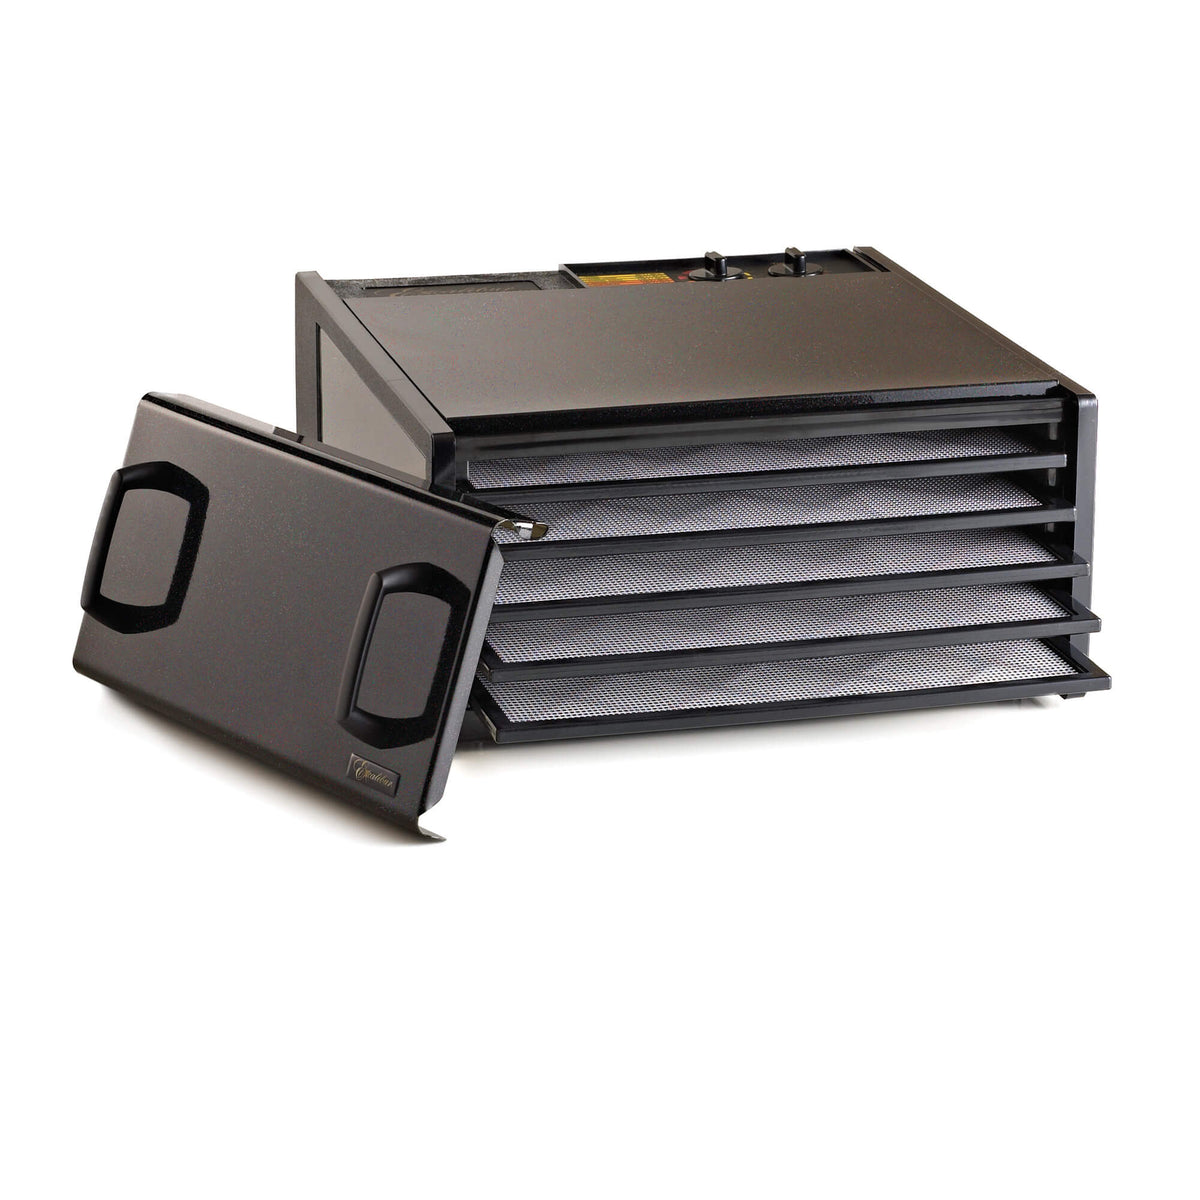 Excalibur D502TB Twilight Black 5 tray stainless steel dehydrator with door propped to the side and trays pulled out.